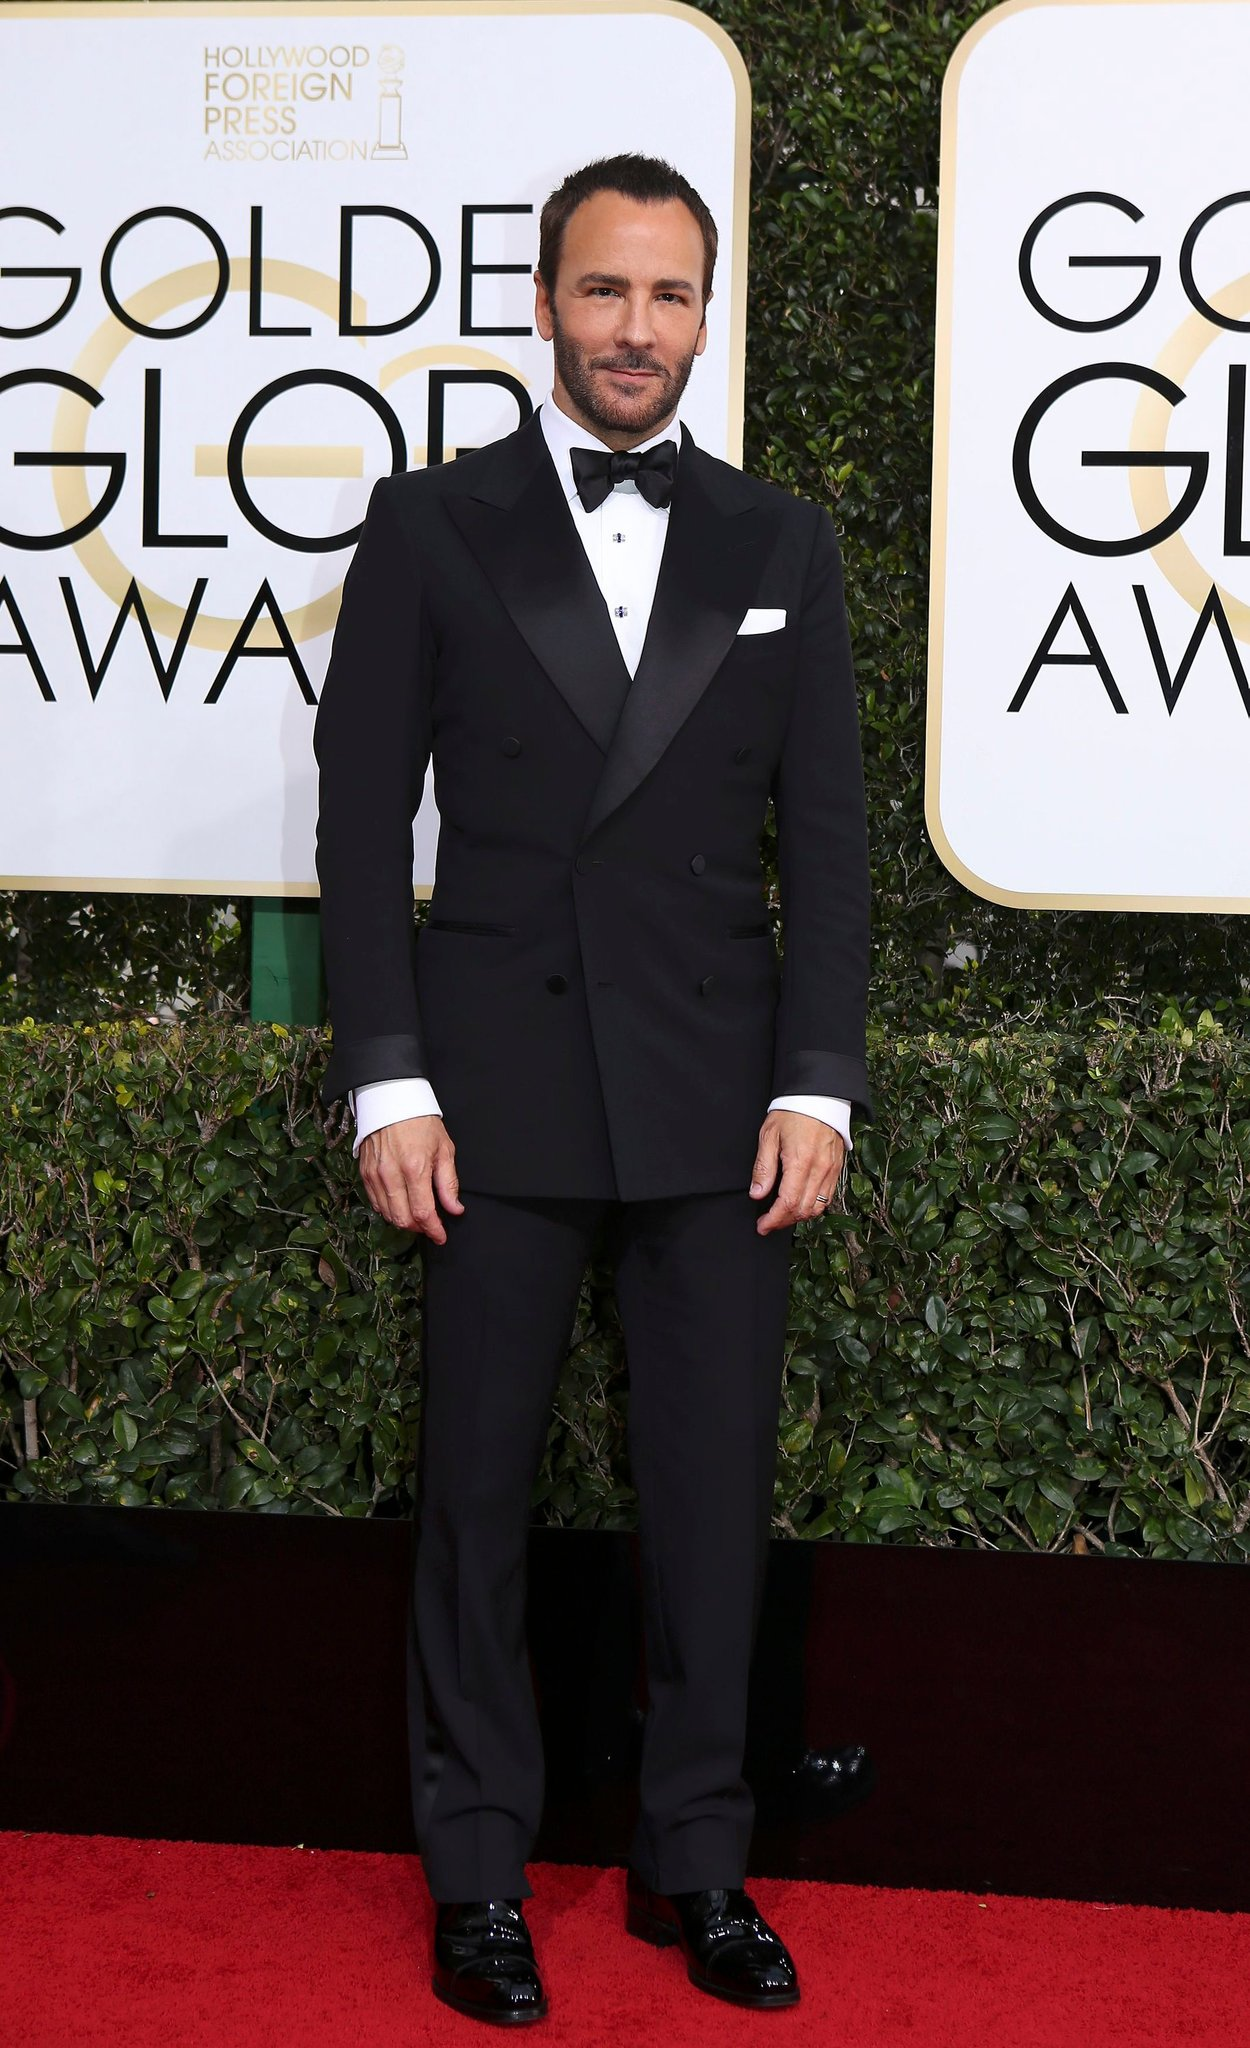 Tom Ford wearing Tom Ford.